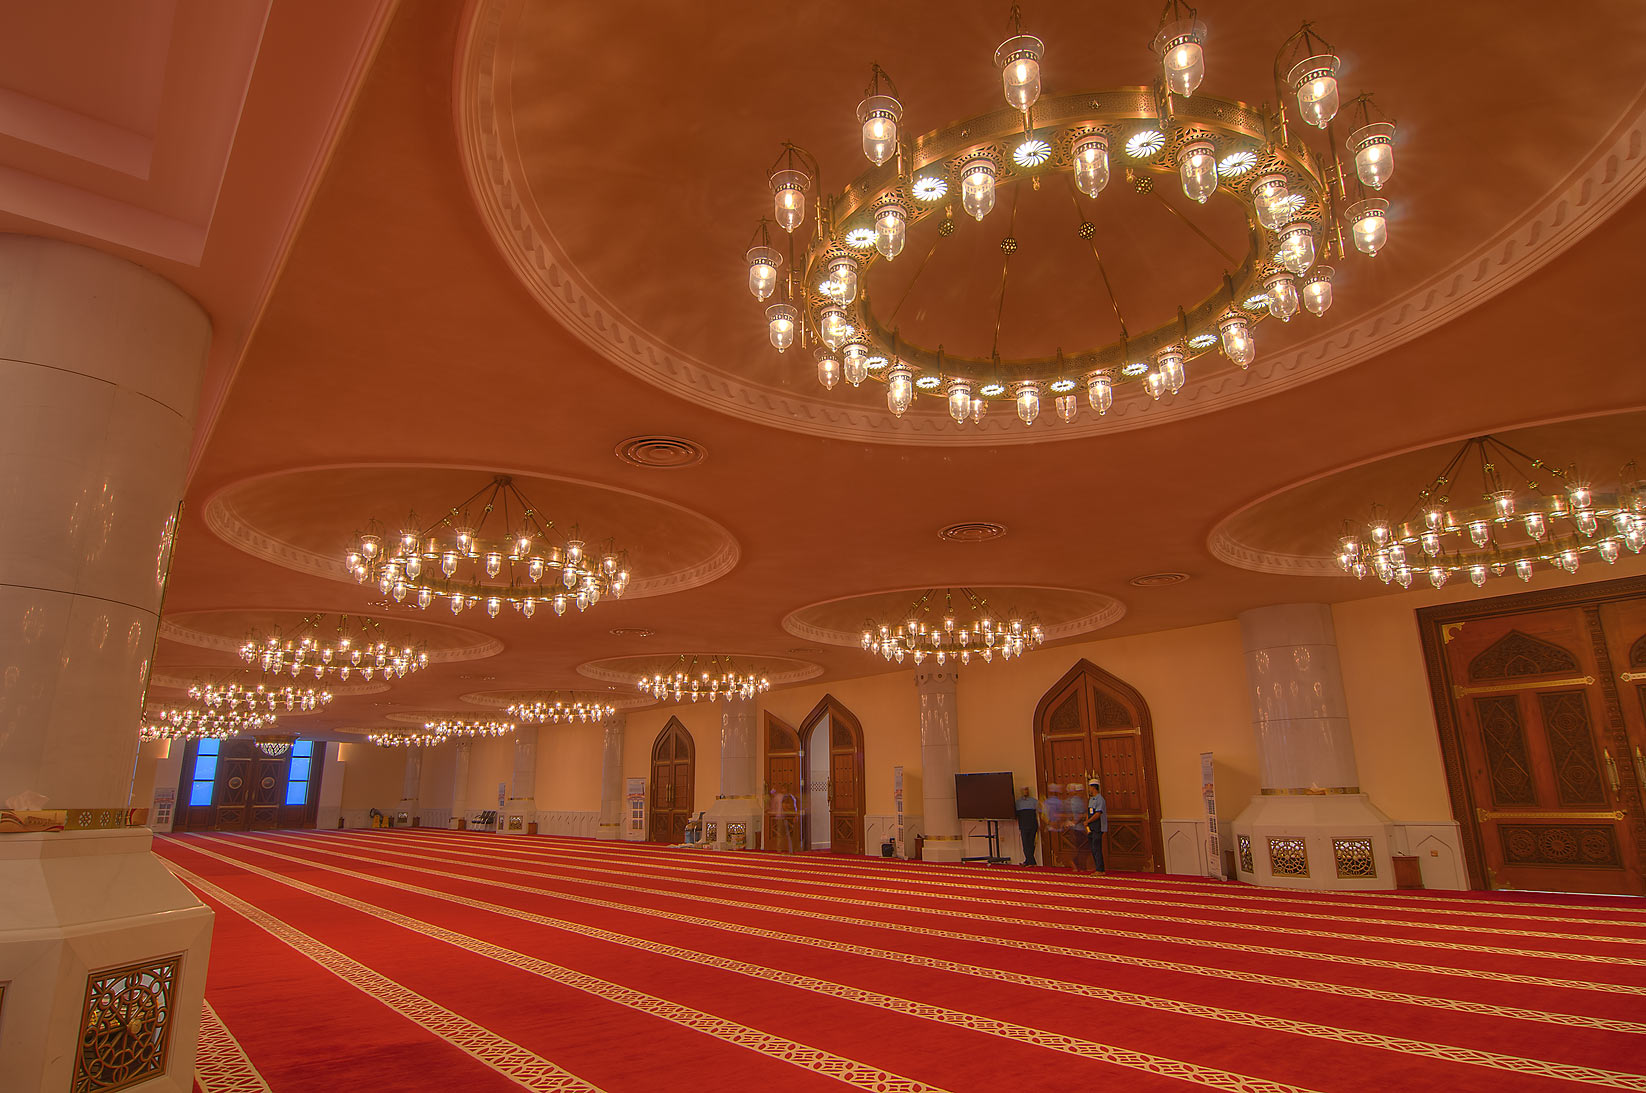 Entrance space in prayer hall (musallah) in State...Ibn Abdul Wahhab Mosque). Doha, Qatar